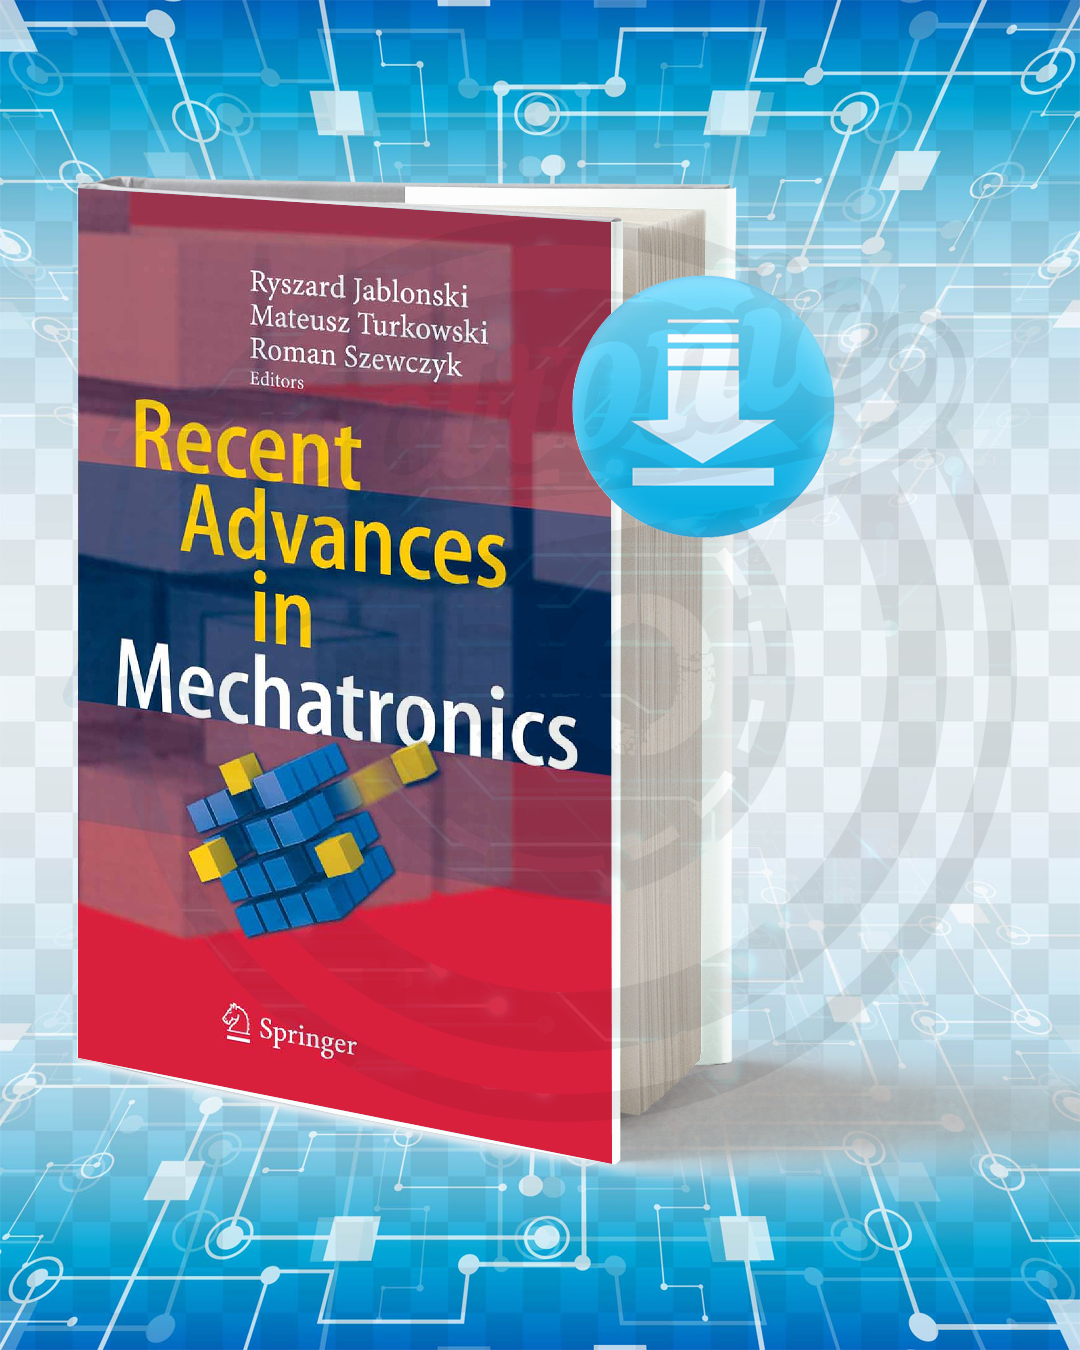 Free Book Recent Advances in Mechatronics pdf.